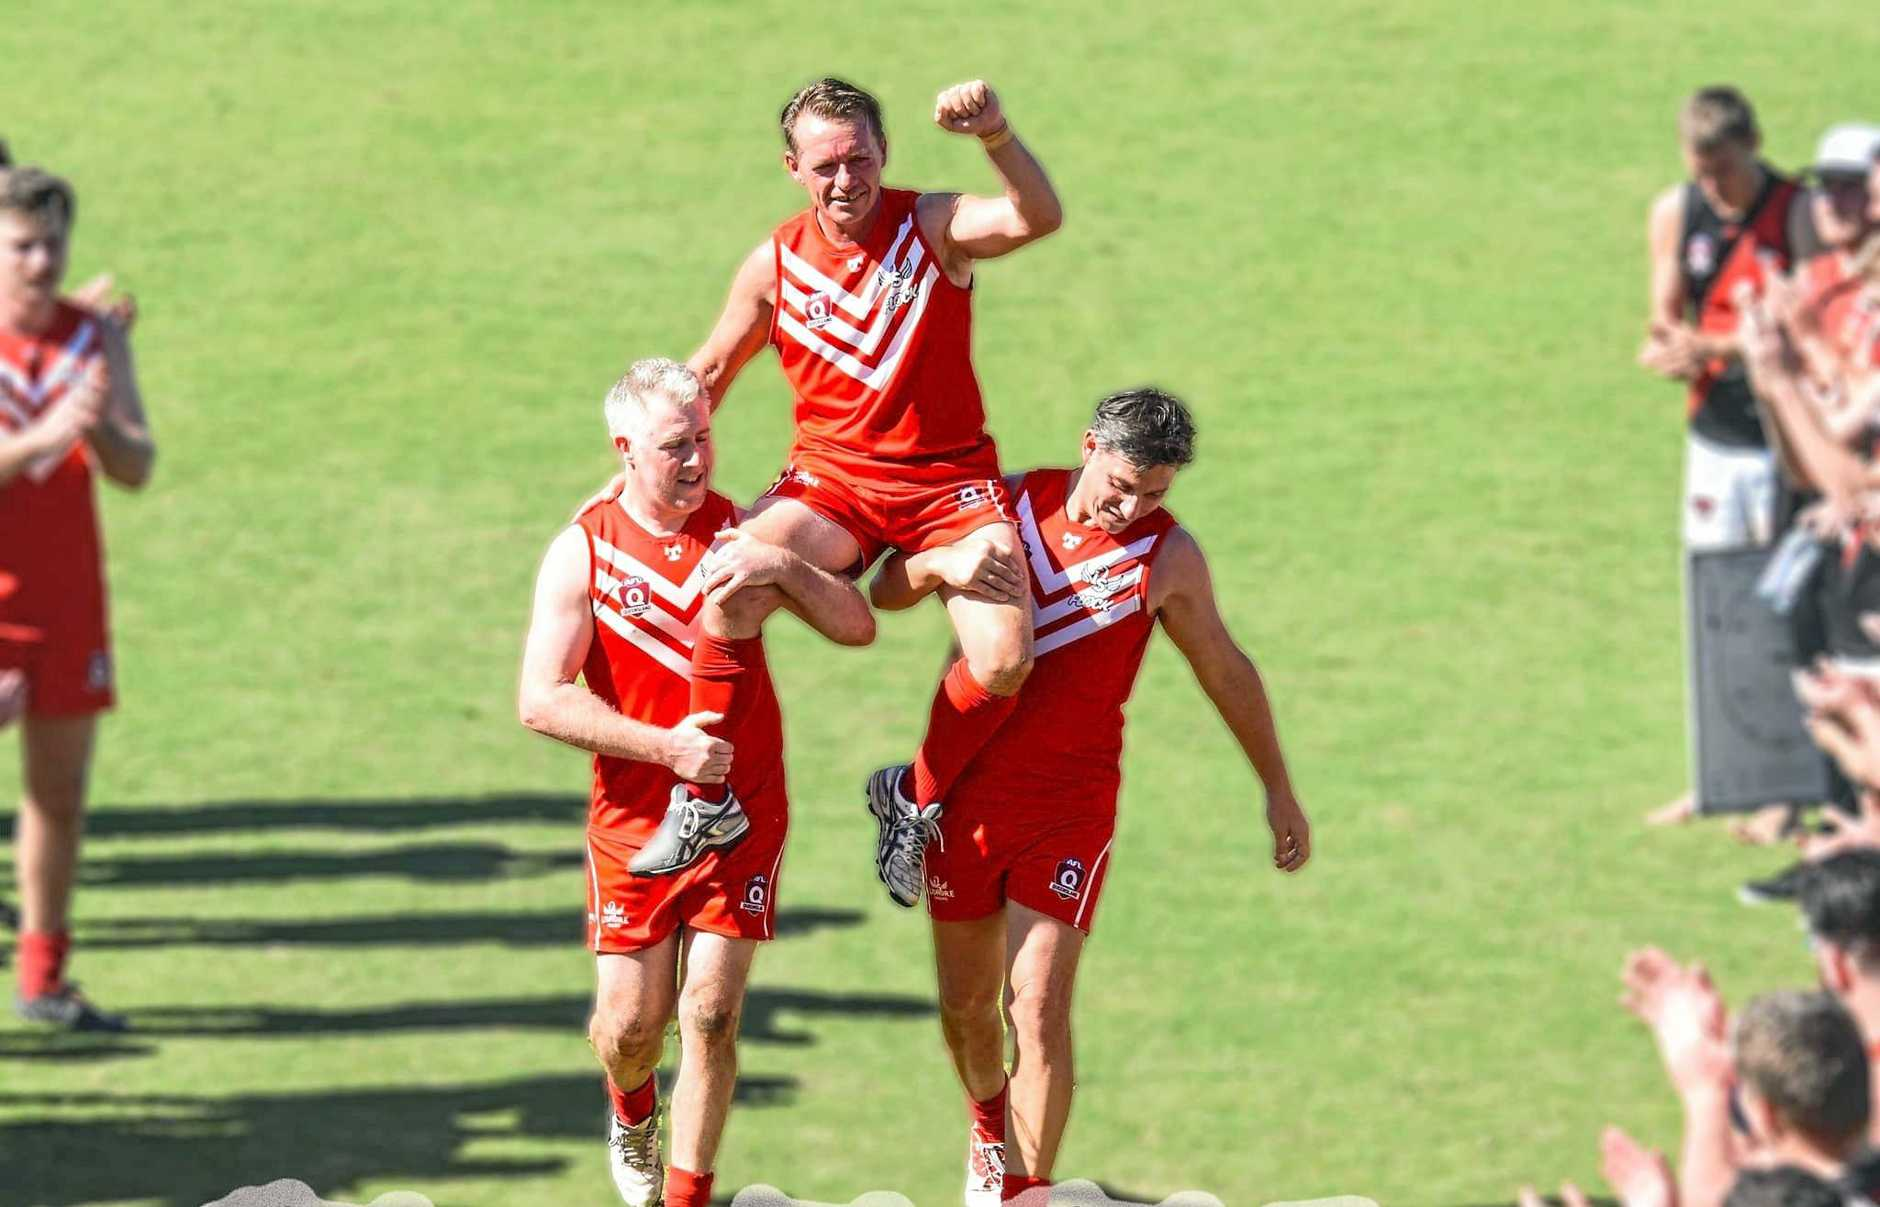 NEW COACH: After his final home game Lismore Swan's reserve player Shawn Holland is chaired off the ground. In October 2019 Holland was appointed the coach of the Swans women's team for the 2020 season.